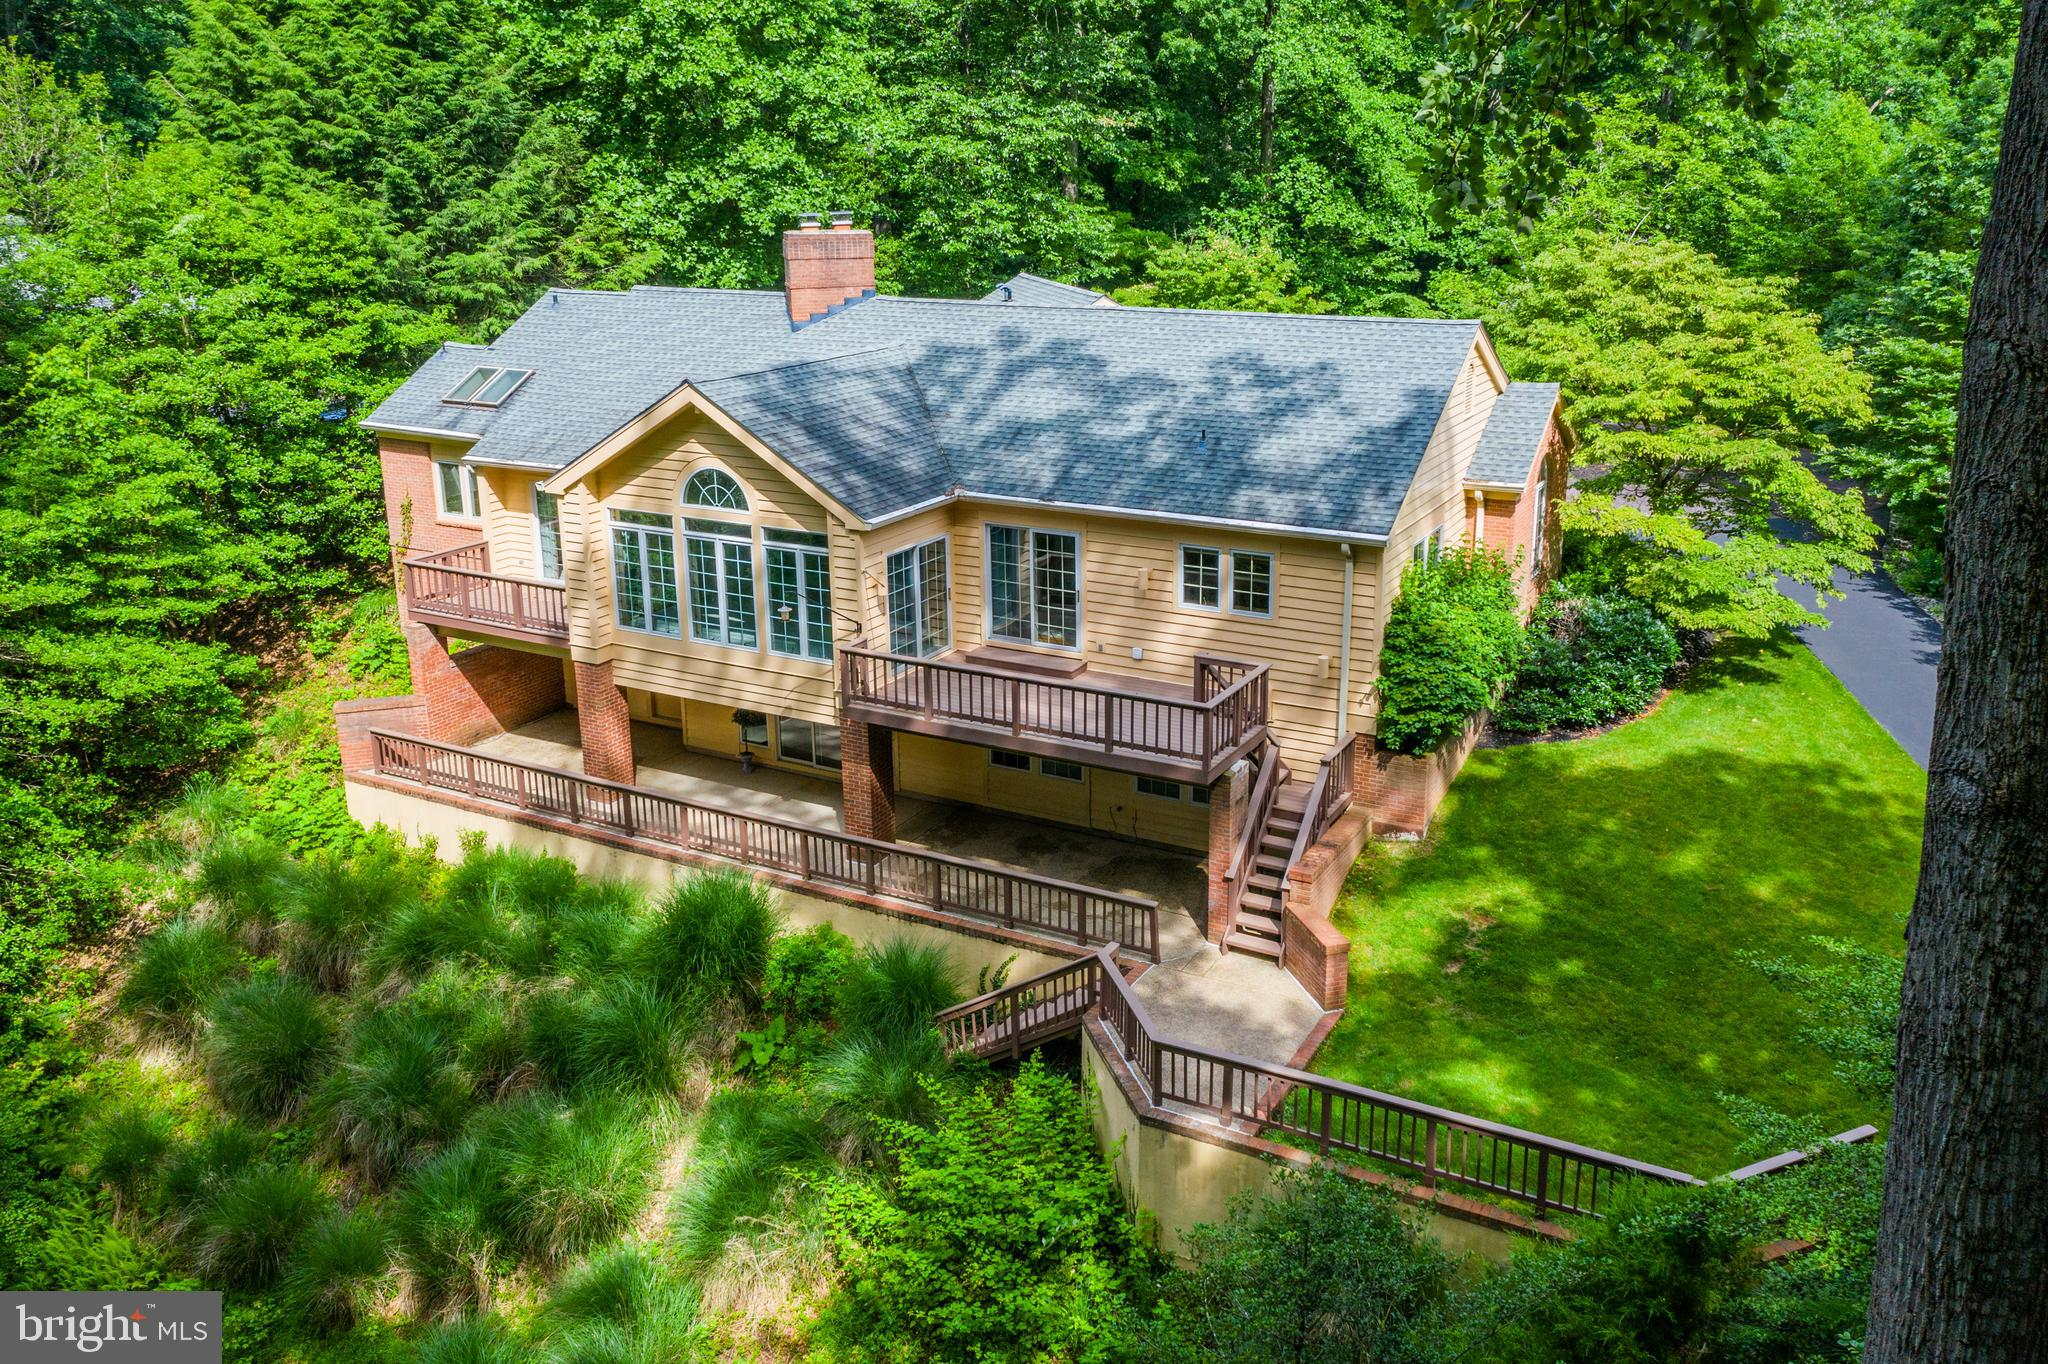 555 OSPREY POINT ROAD, CROWNSVILLE, MD 21032